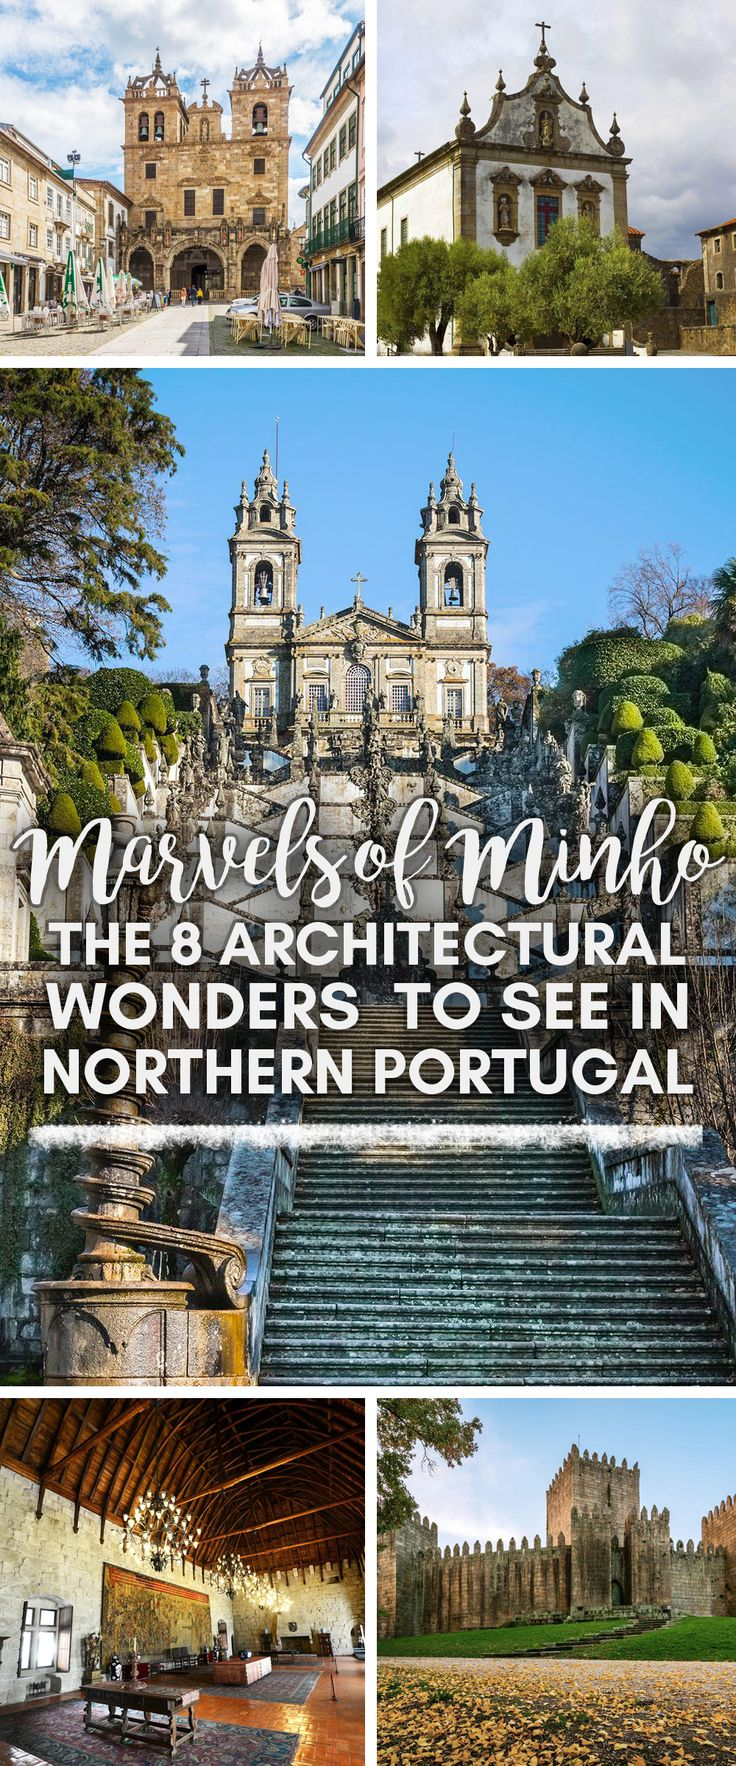 Emerald-green hills, brisk ocean winds, softly clanging cowbells—the sights and sounds of Portugal's Minho province may be a far cry from those of sunny Lisbon or the Algarve, but they're just as beguiling. #Minho #Portugal #architecture #historical #travel #wanderlust #bucketlist